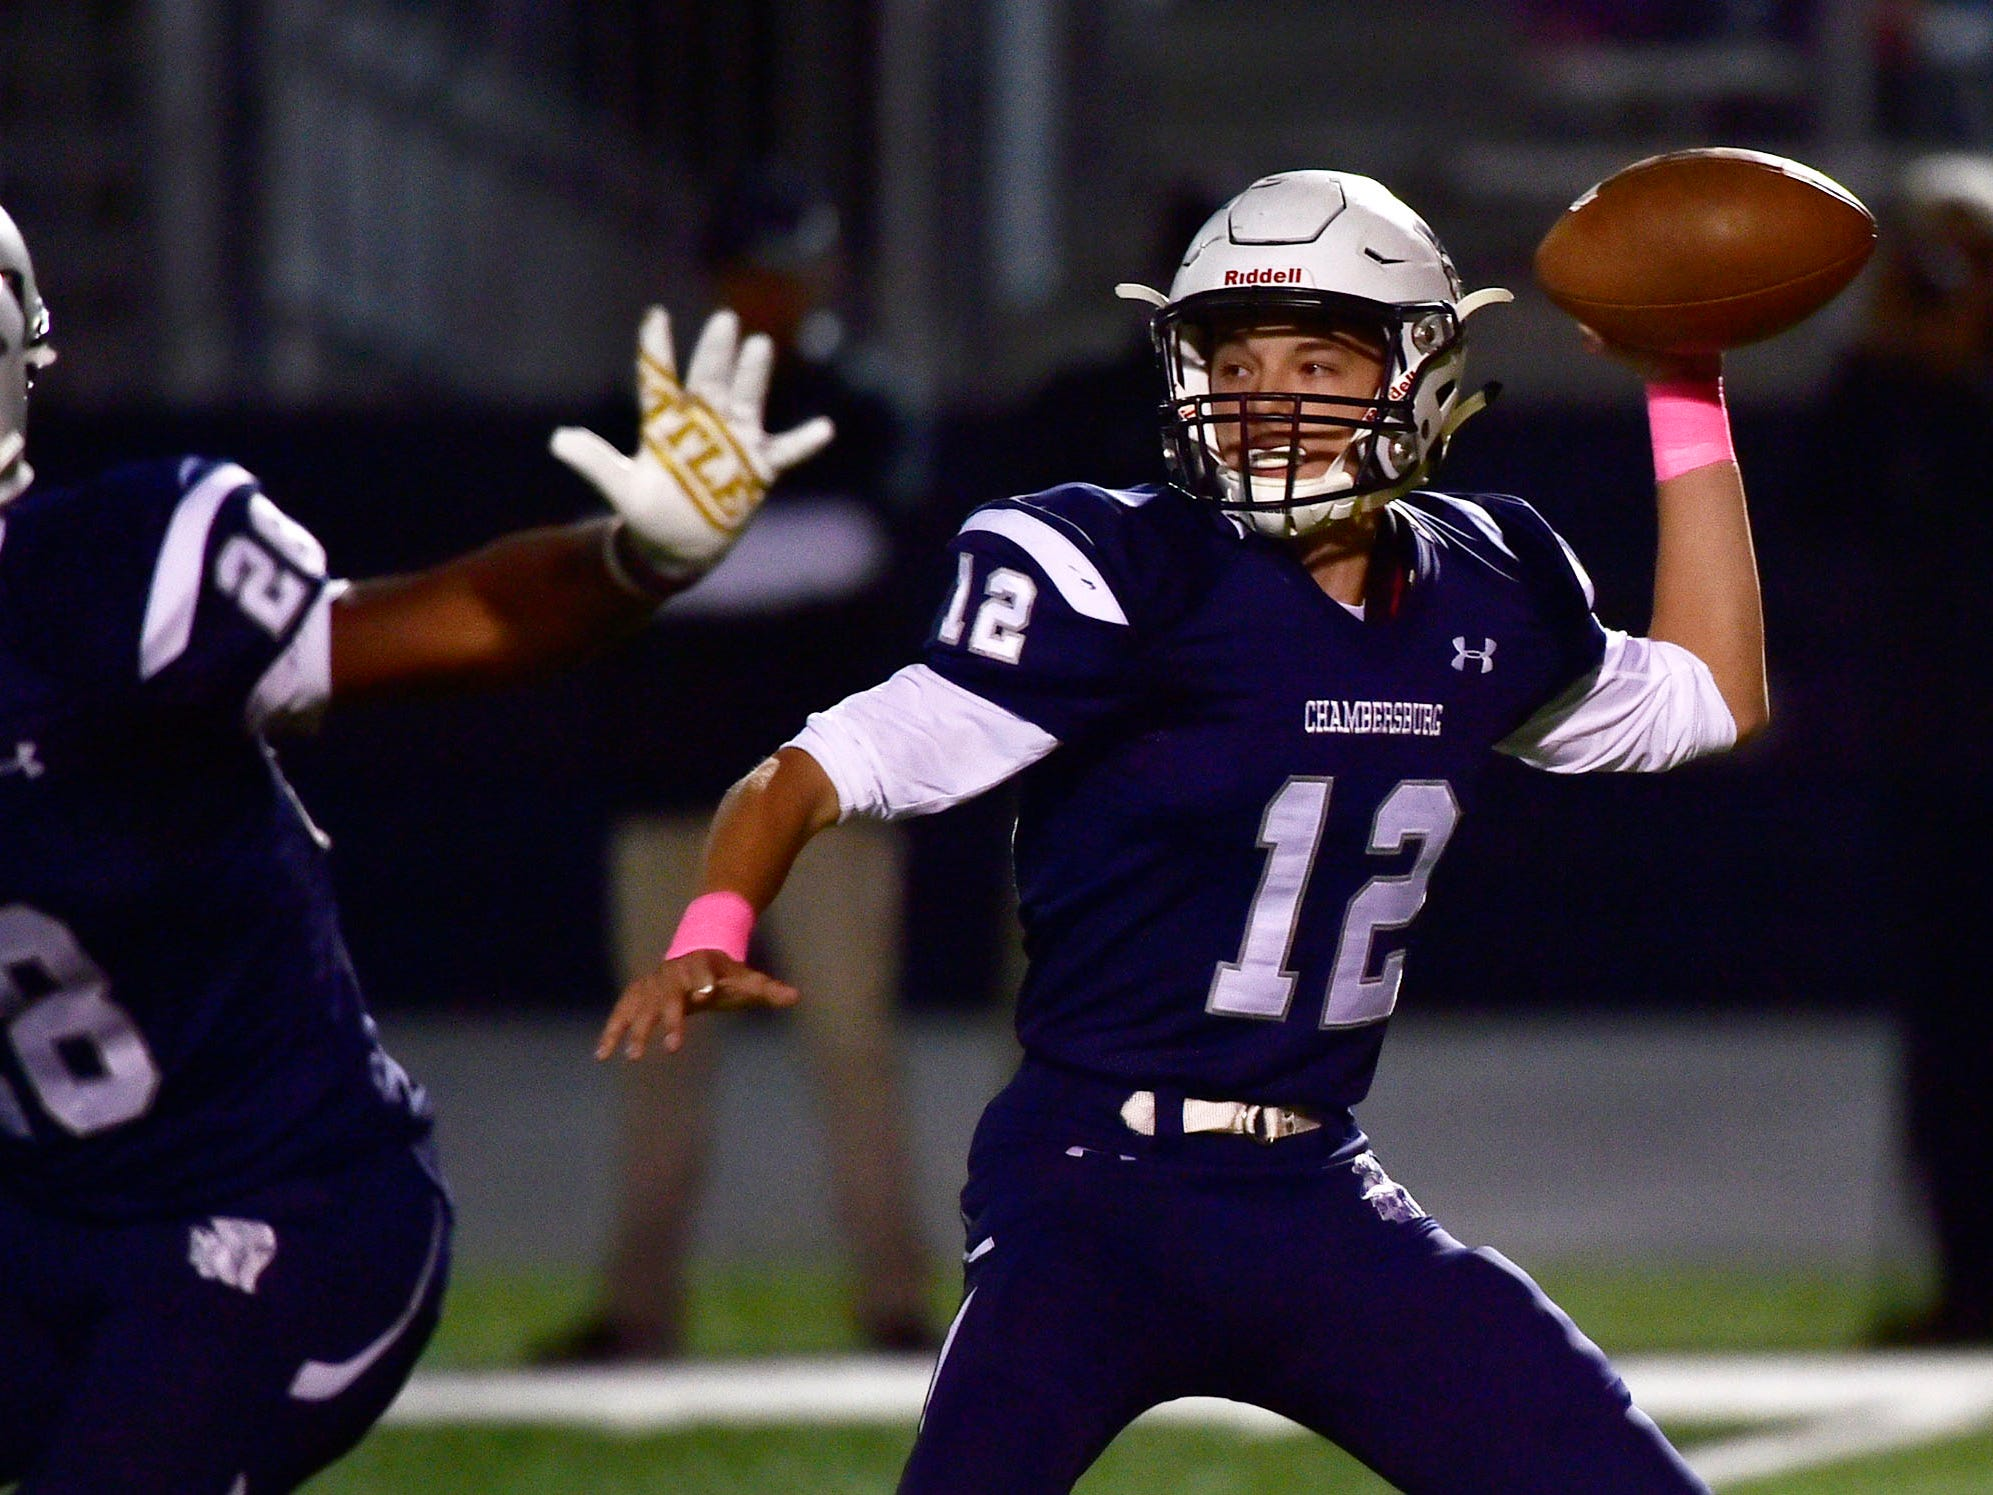 Chambersburg's Brady Stumbaugh drops back to pass the ball Chambersburg dropped a 28-13 game against Harrisburg in PIAA football on Friday, Oct. 12, 2018.